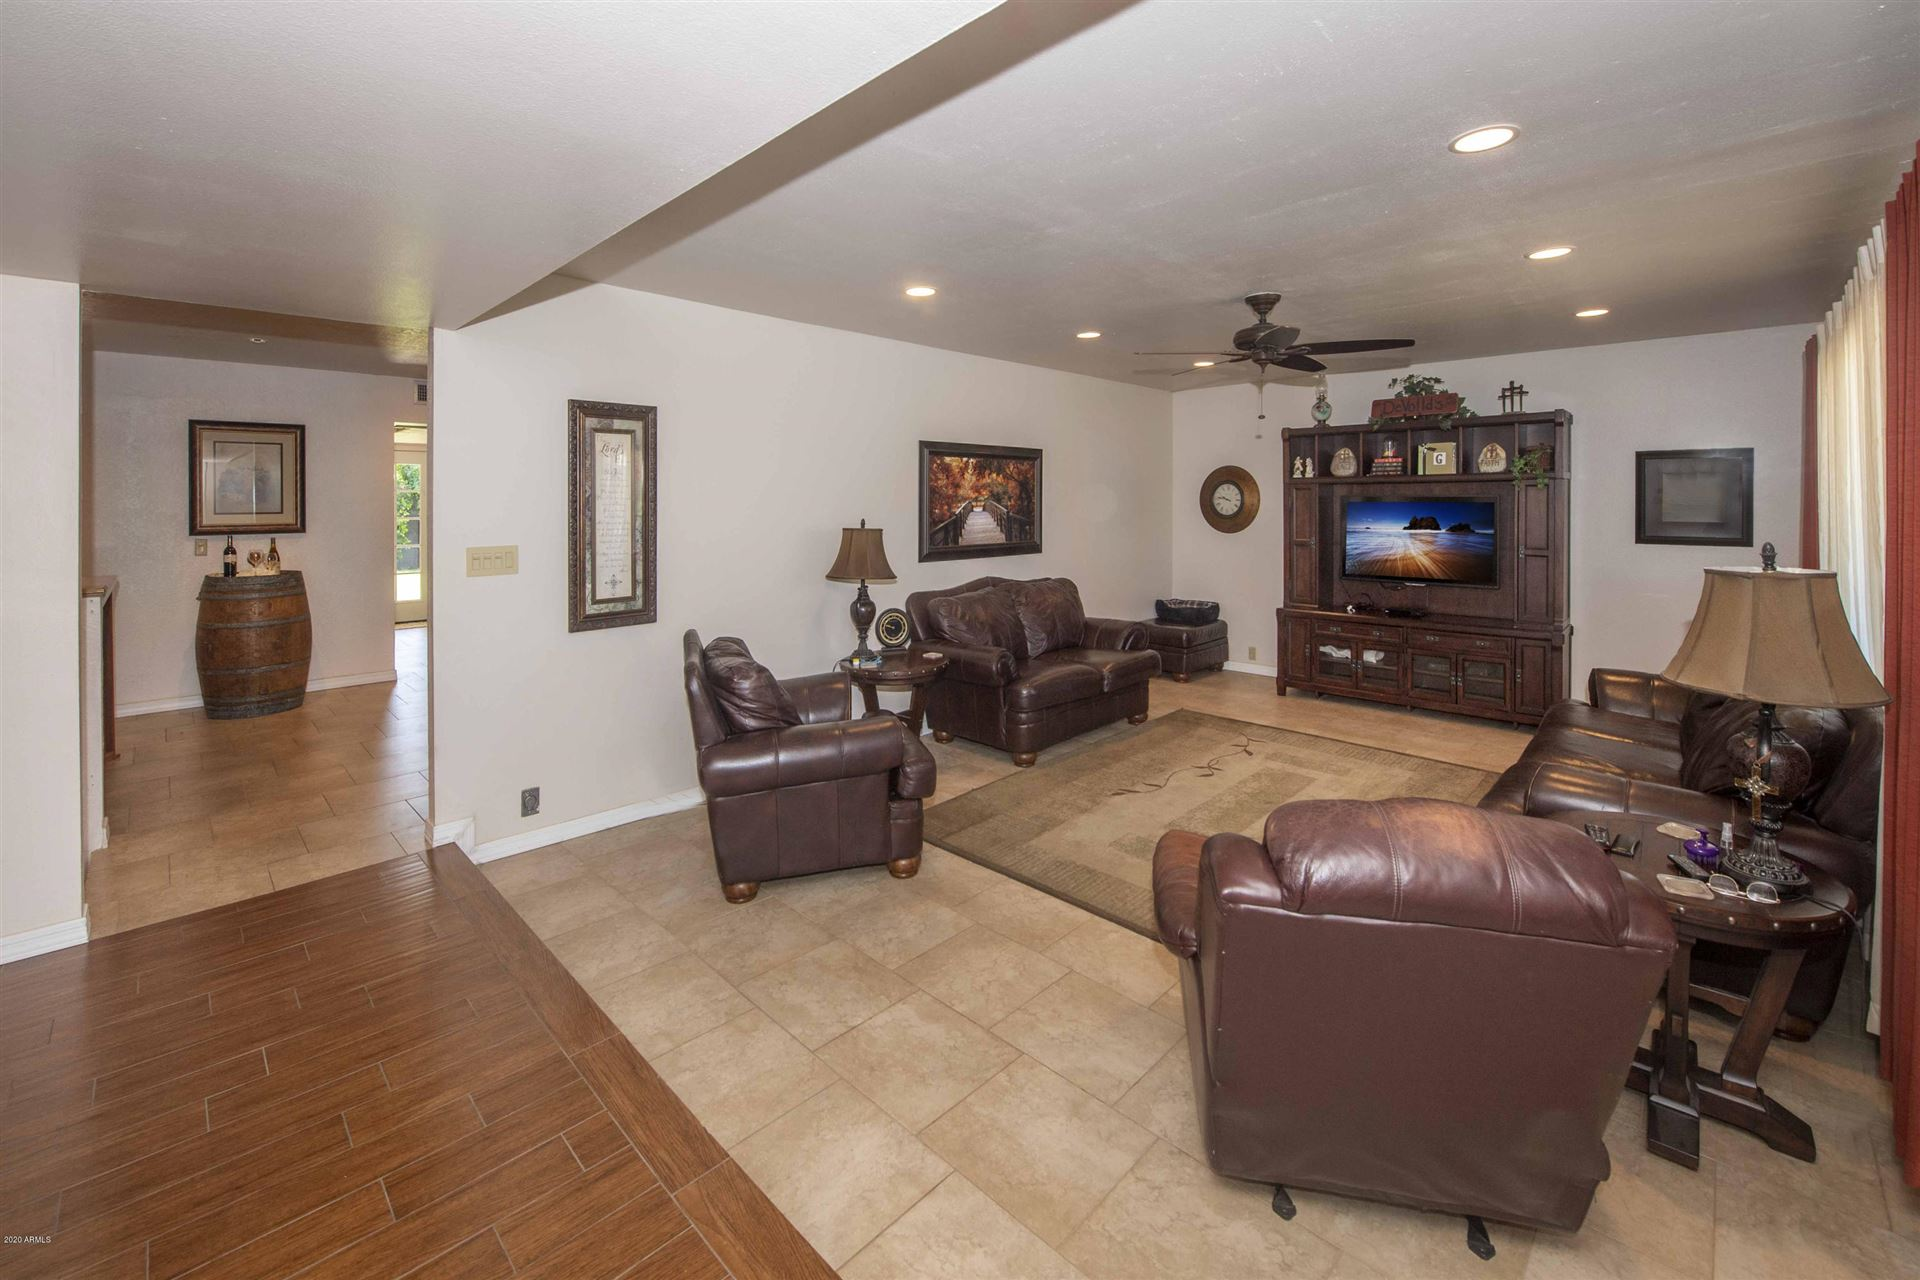 Property Image Of 551 N Temple Street In Mesa, Az